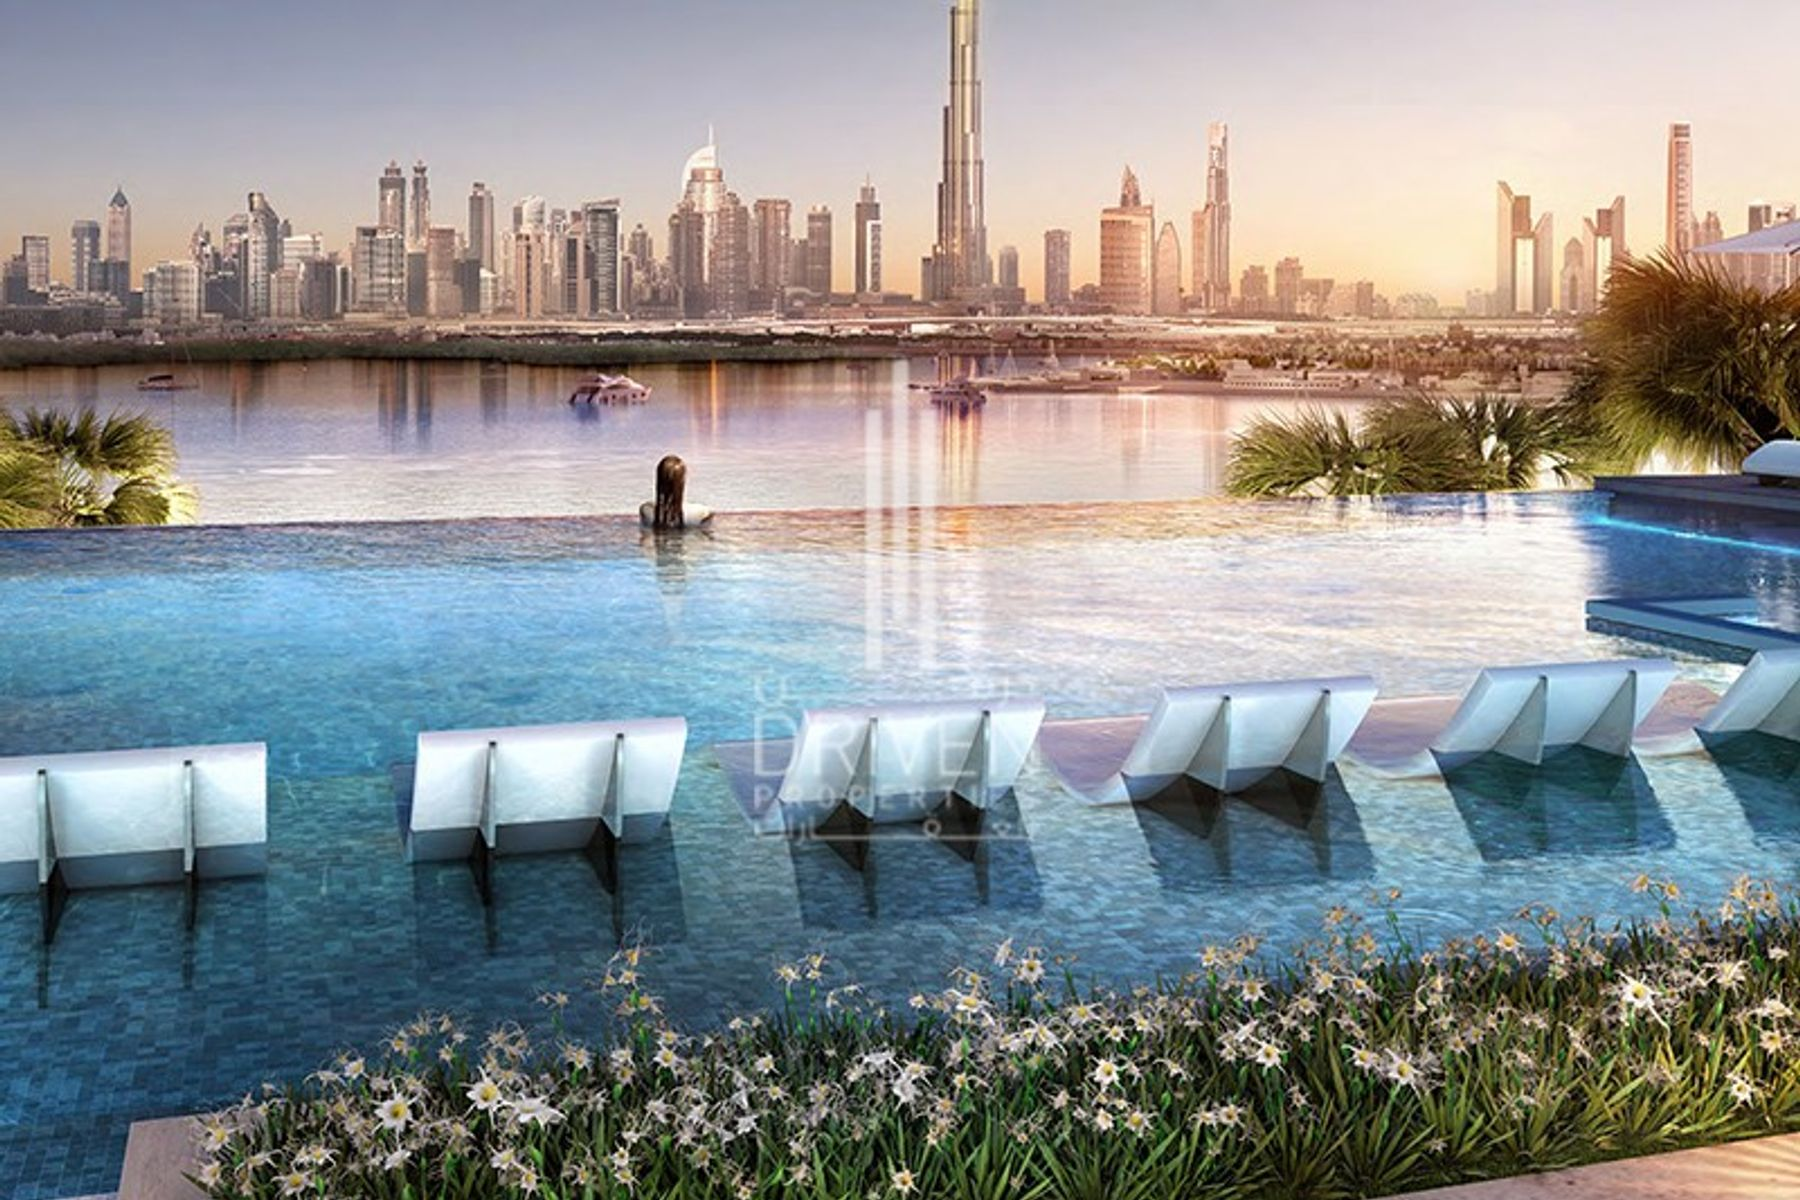 Apartment for Sale in The Grand, Dubai Creek Harbour